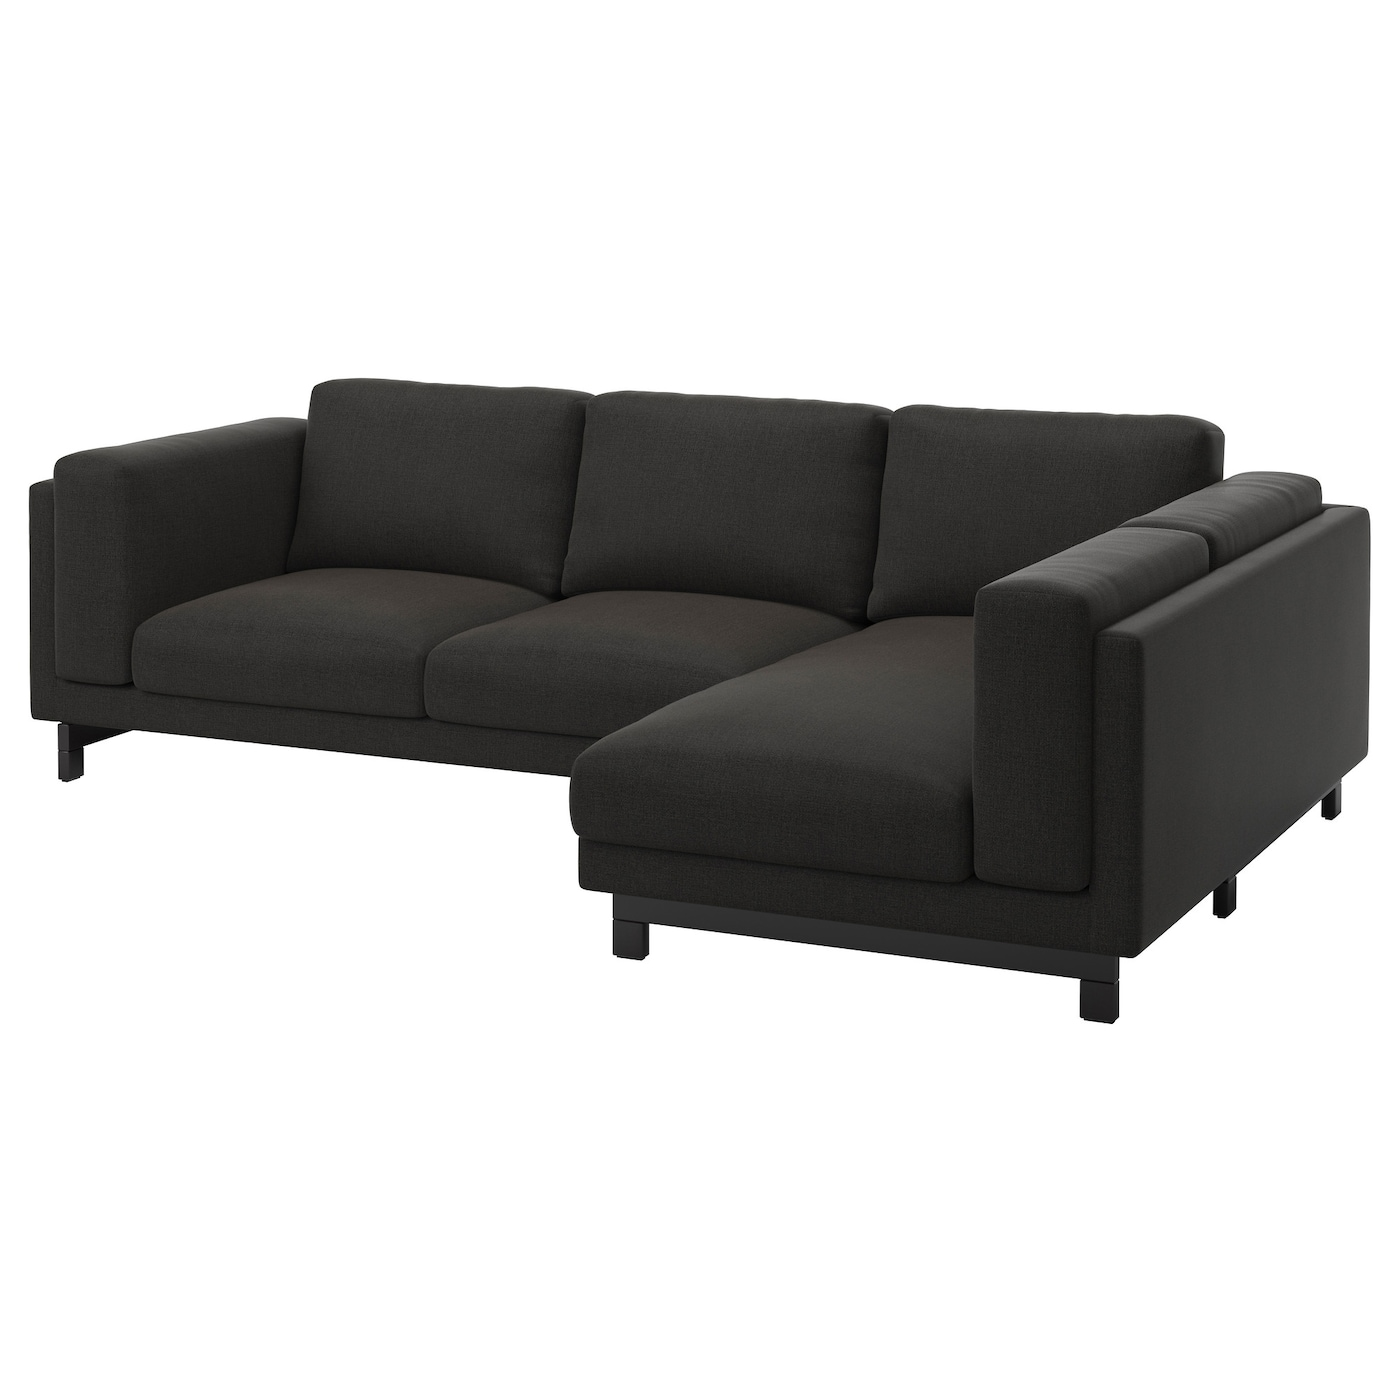 Discontinued Ikea Sofas